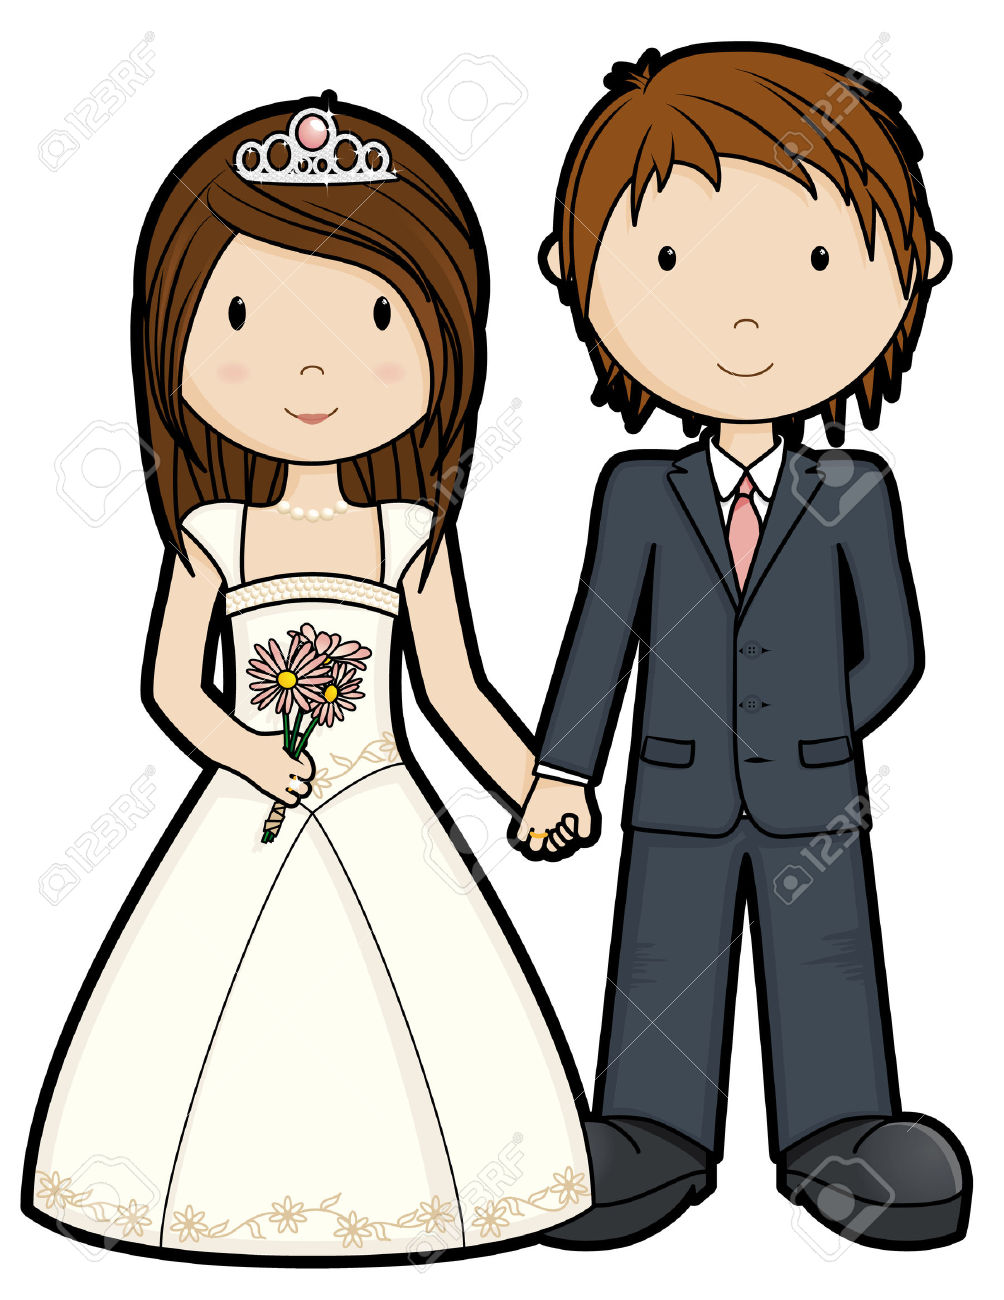 Kopel clipart just married Isolated Free Free Vectors Royalty